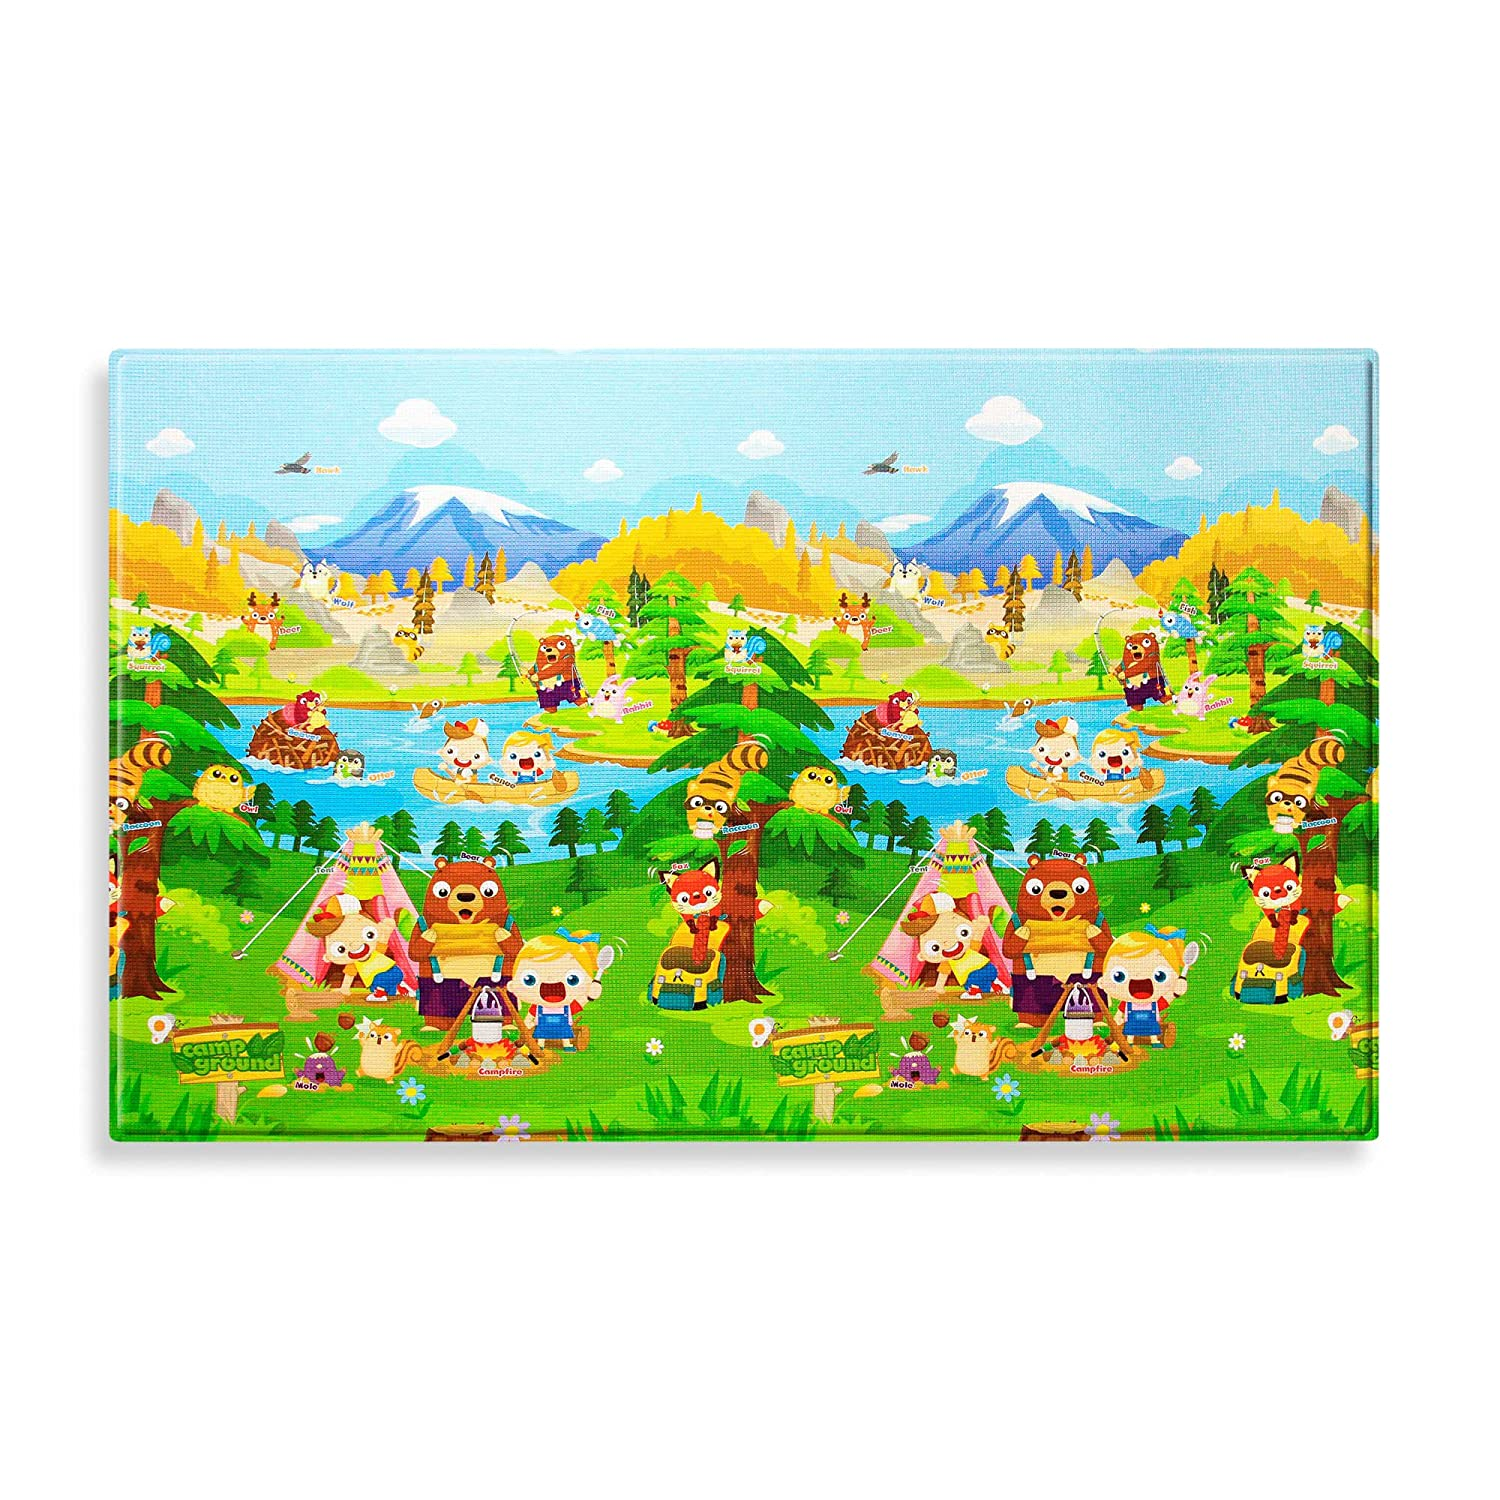 amazoncom baby care large baby play mat in let's go camping  - amazoncom baby care large baby play mat in let's go camping toys  games